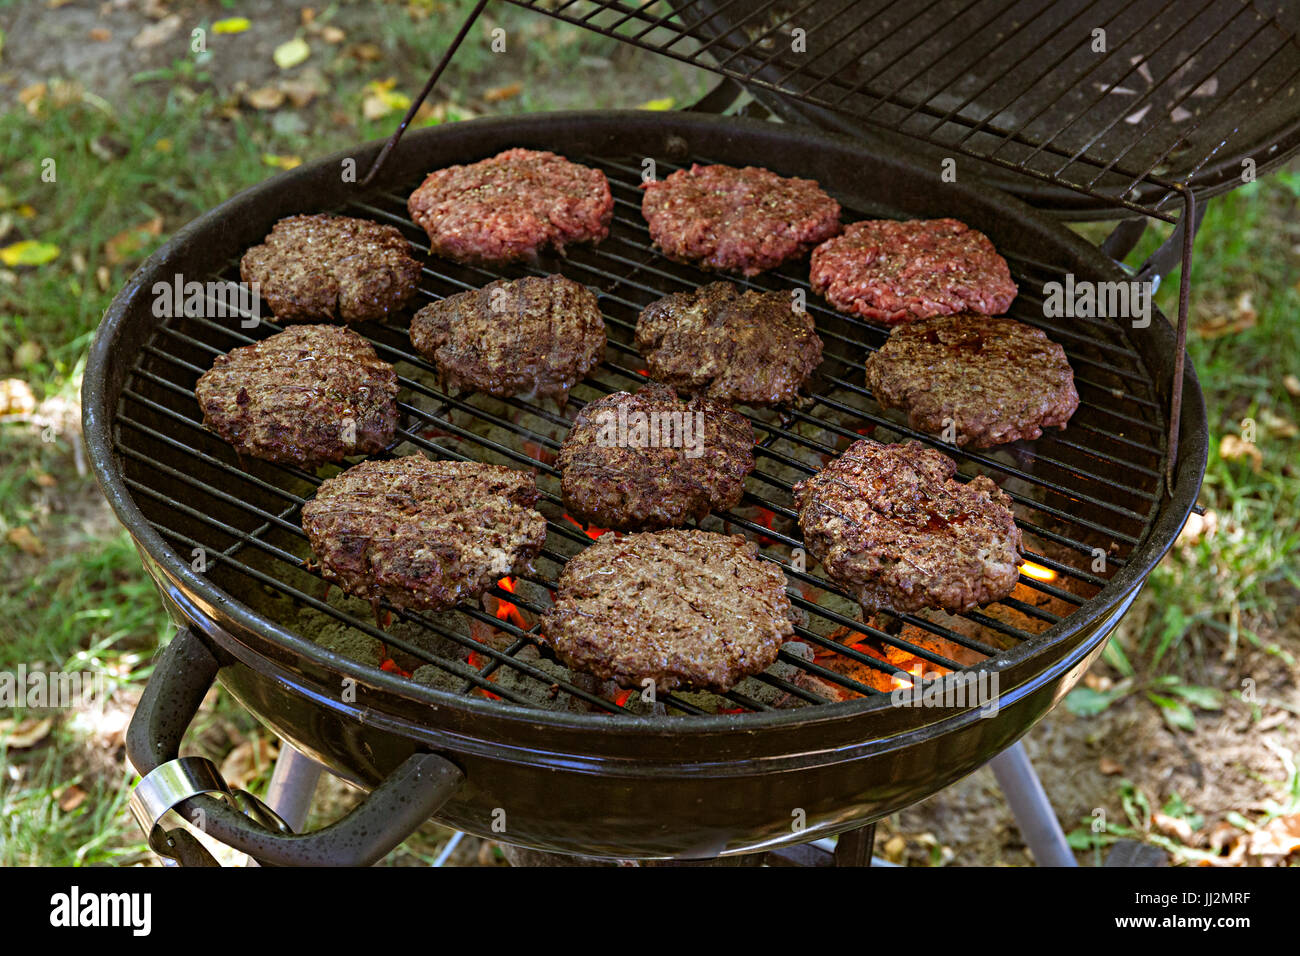 Hamburgers On A Charcoal Grill Stock Photo Alamy